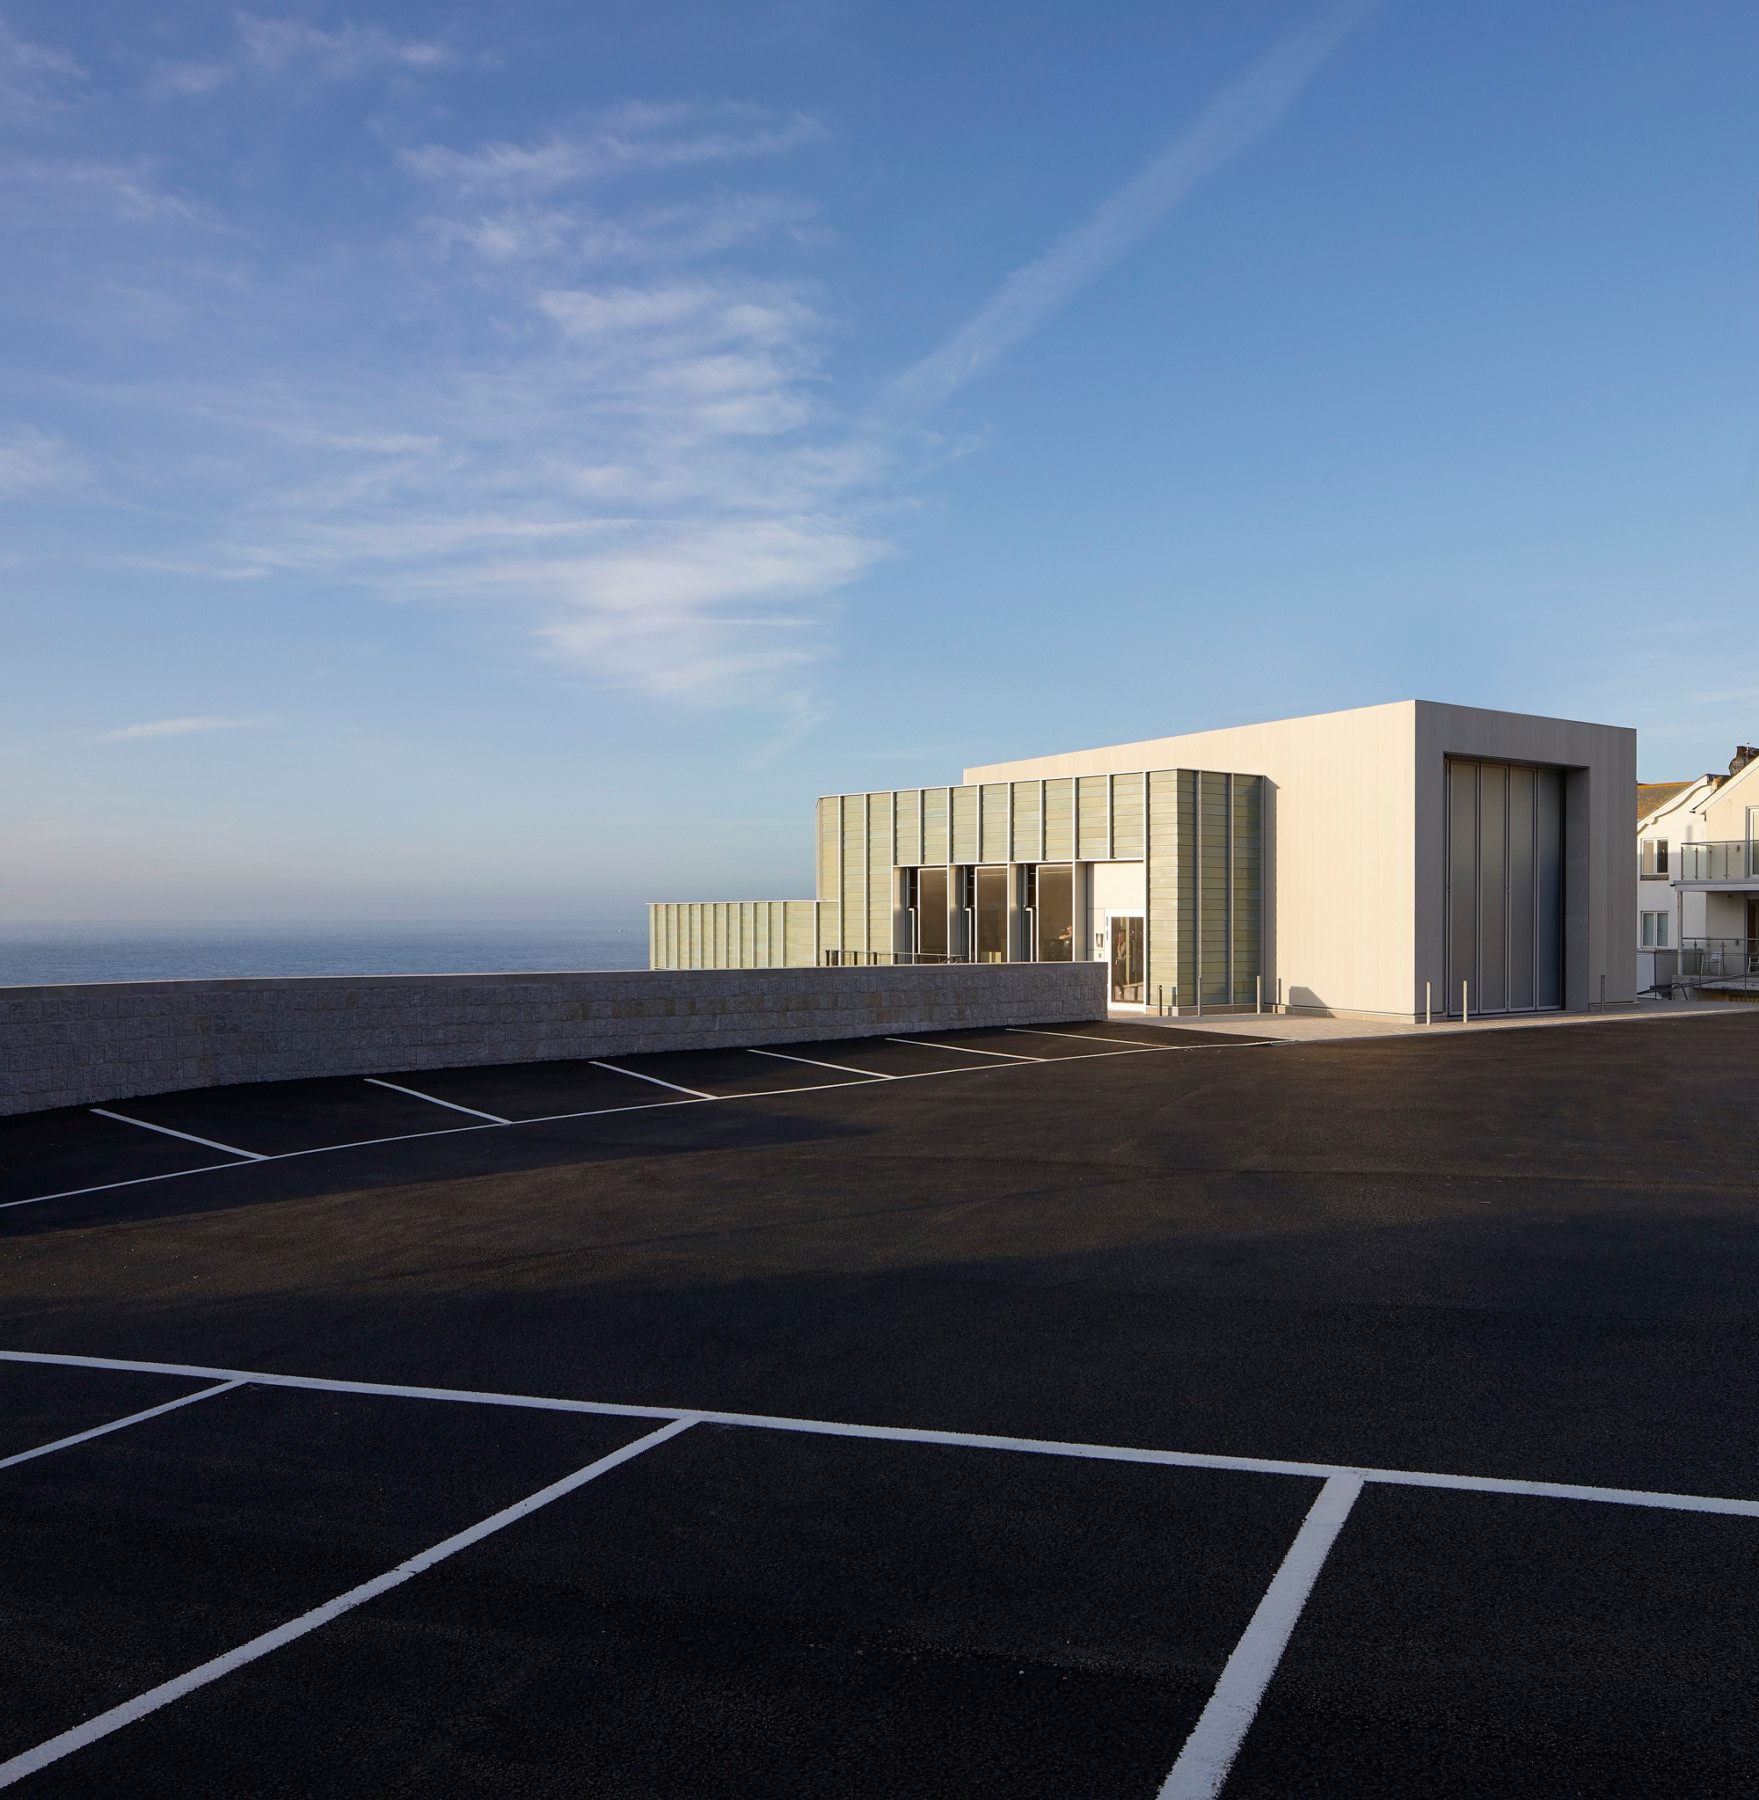 Jamie-fobert-architects-tate-st-ives-hufton-and-crow-ceramic-pavilion-barnoon-car-park